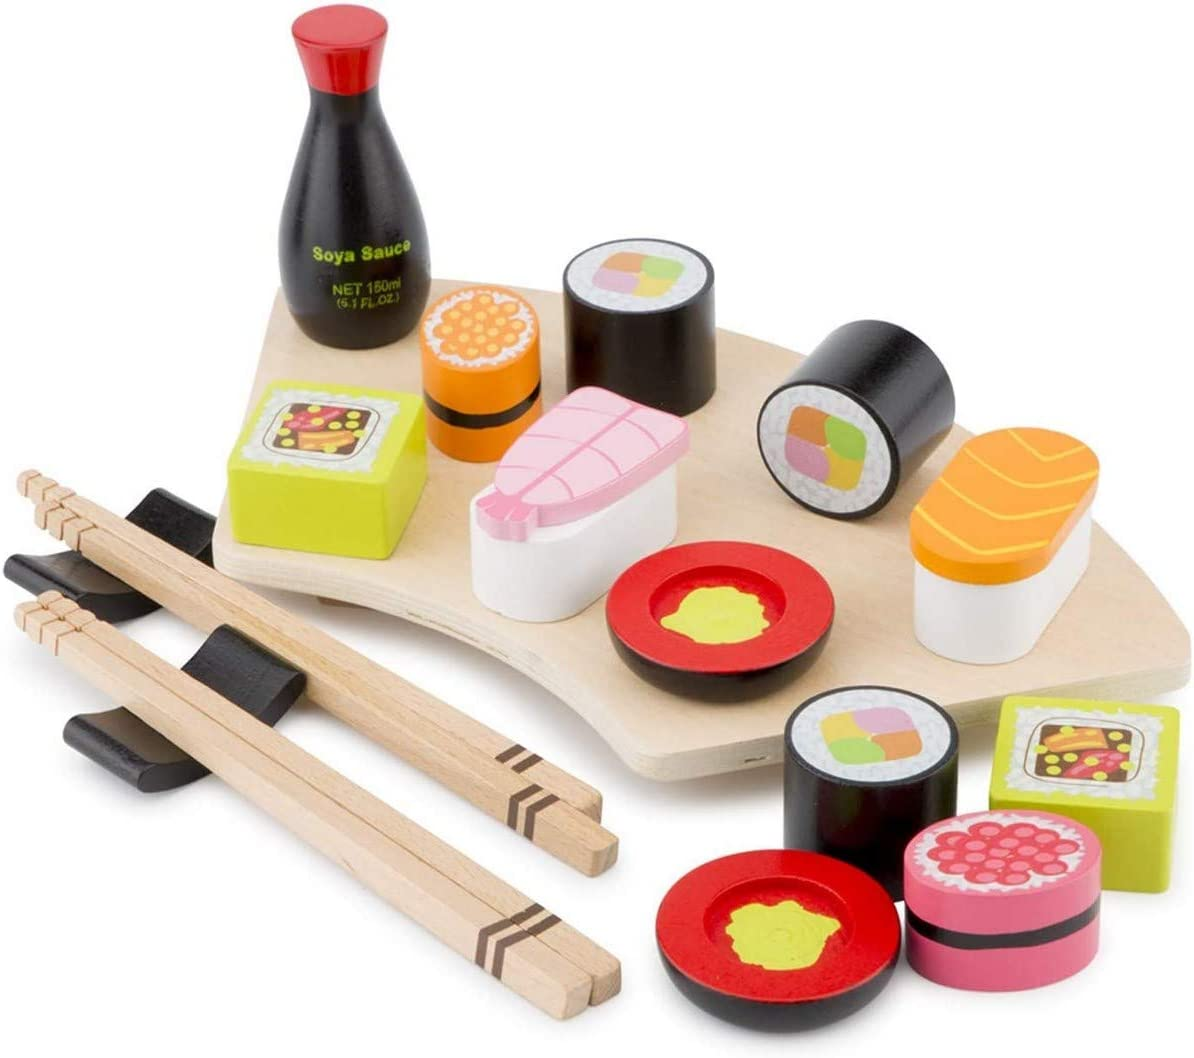 New Classic Toys Wooden Pretend Play Toy for Kids Sushi Set Cooking Simulation Educational Toys and Color Perception Toy for Preschool Age Toddlers Boys Girls